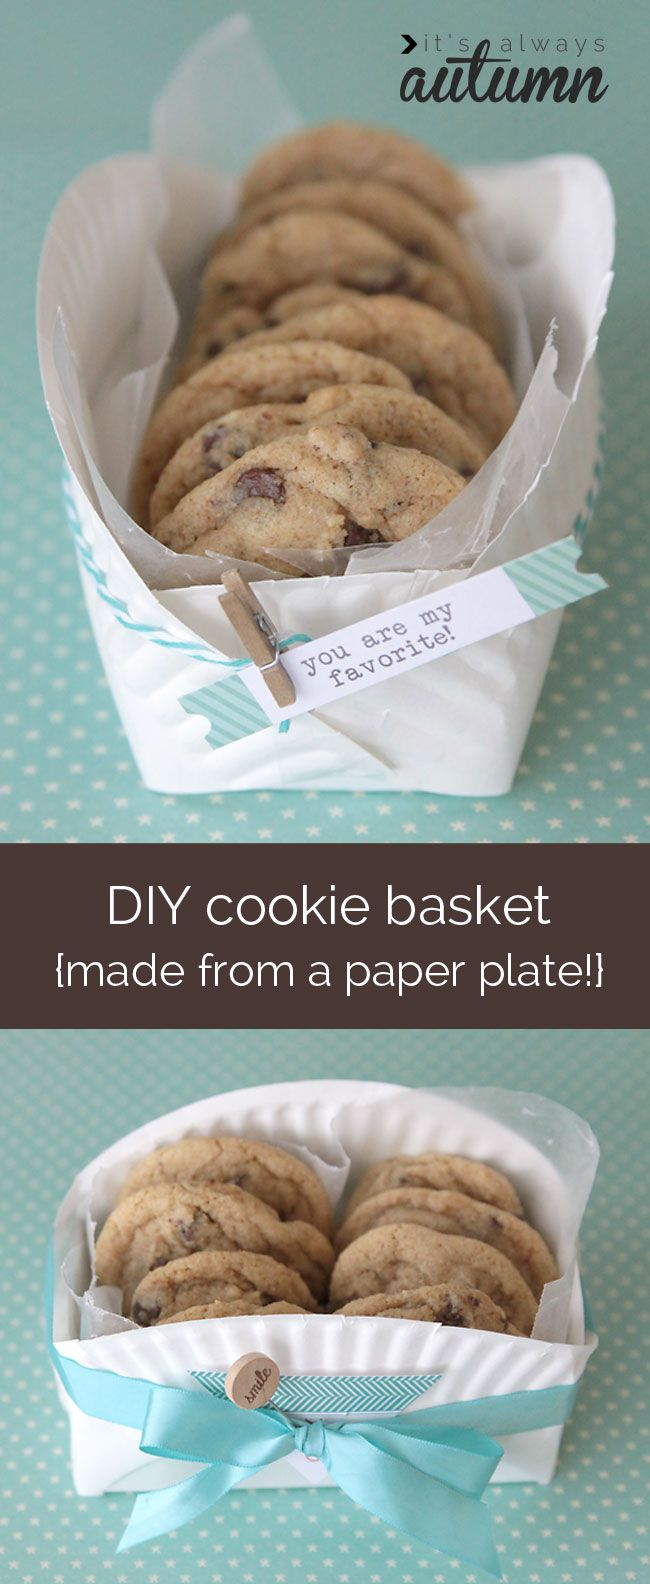 what a cool idea - make a cookie gift basket from a paper plate! super easy way to dress up a plate of cookies.